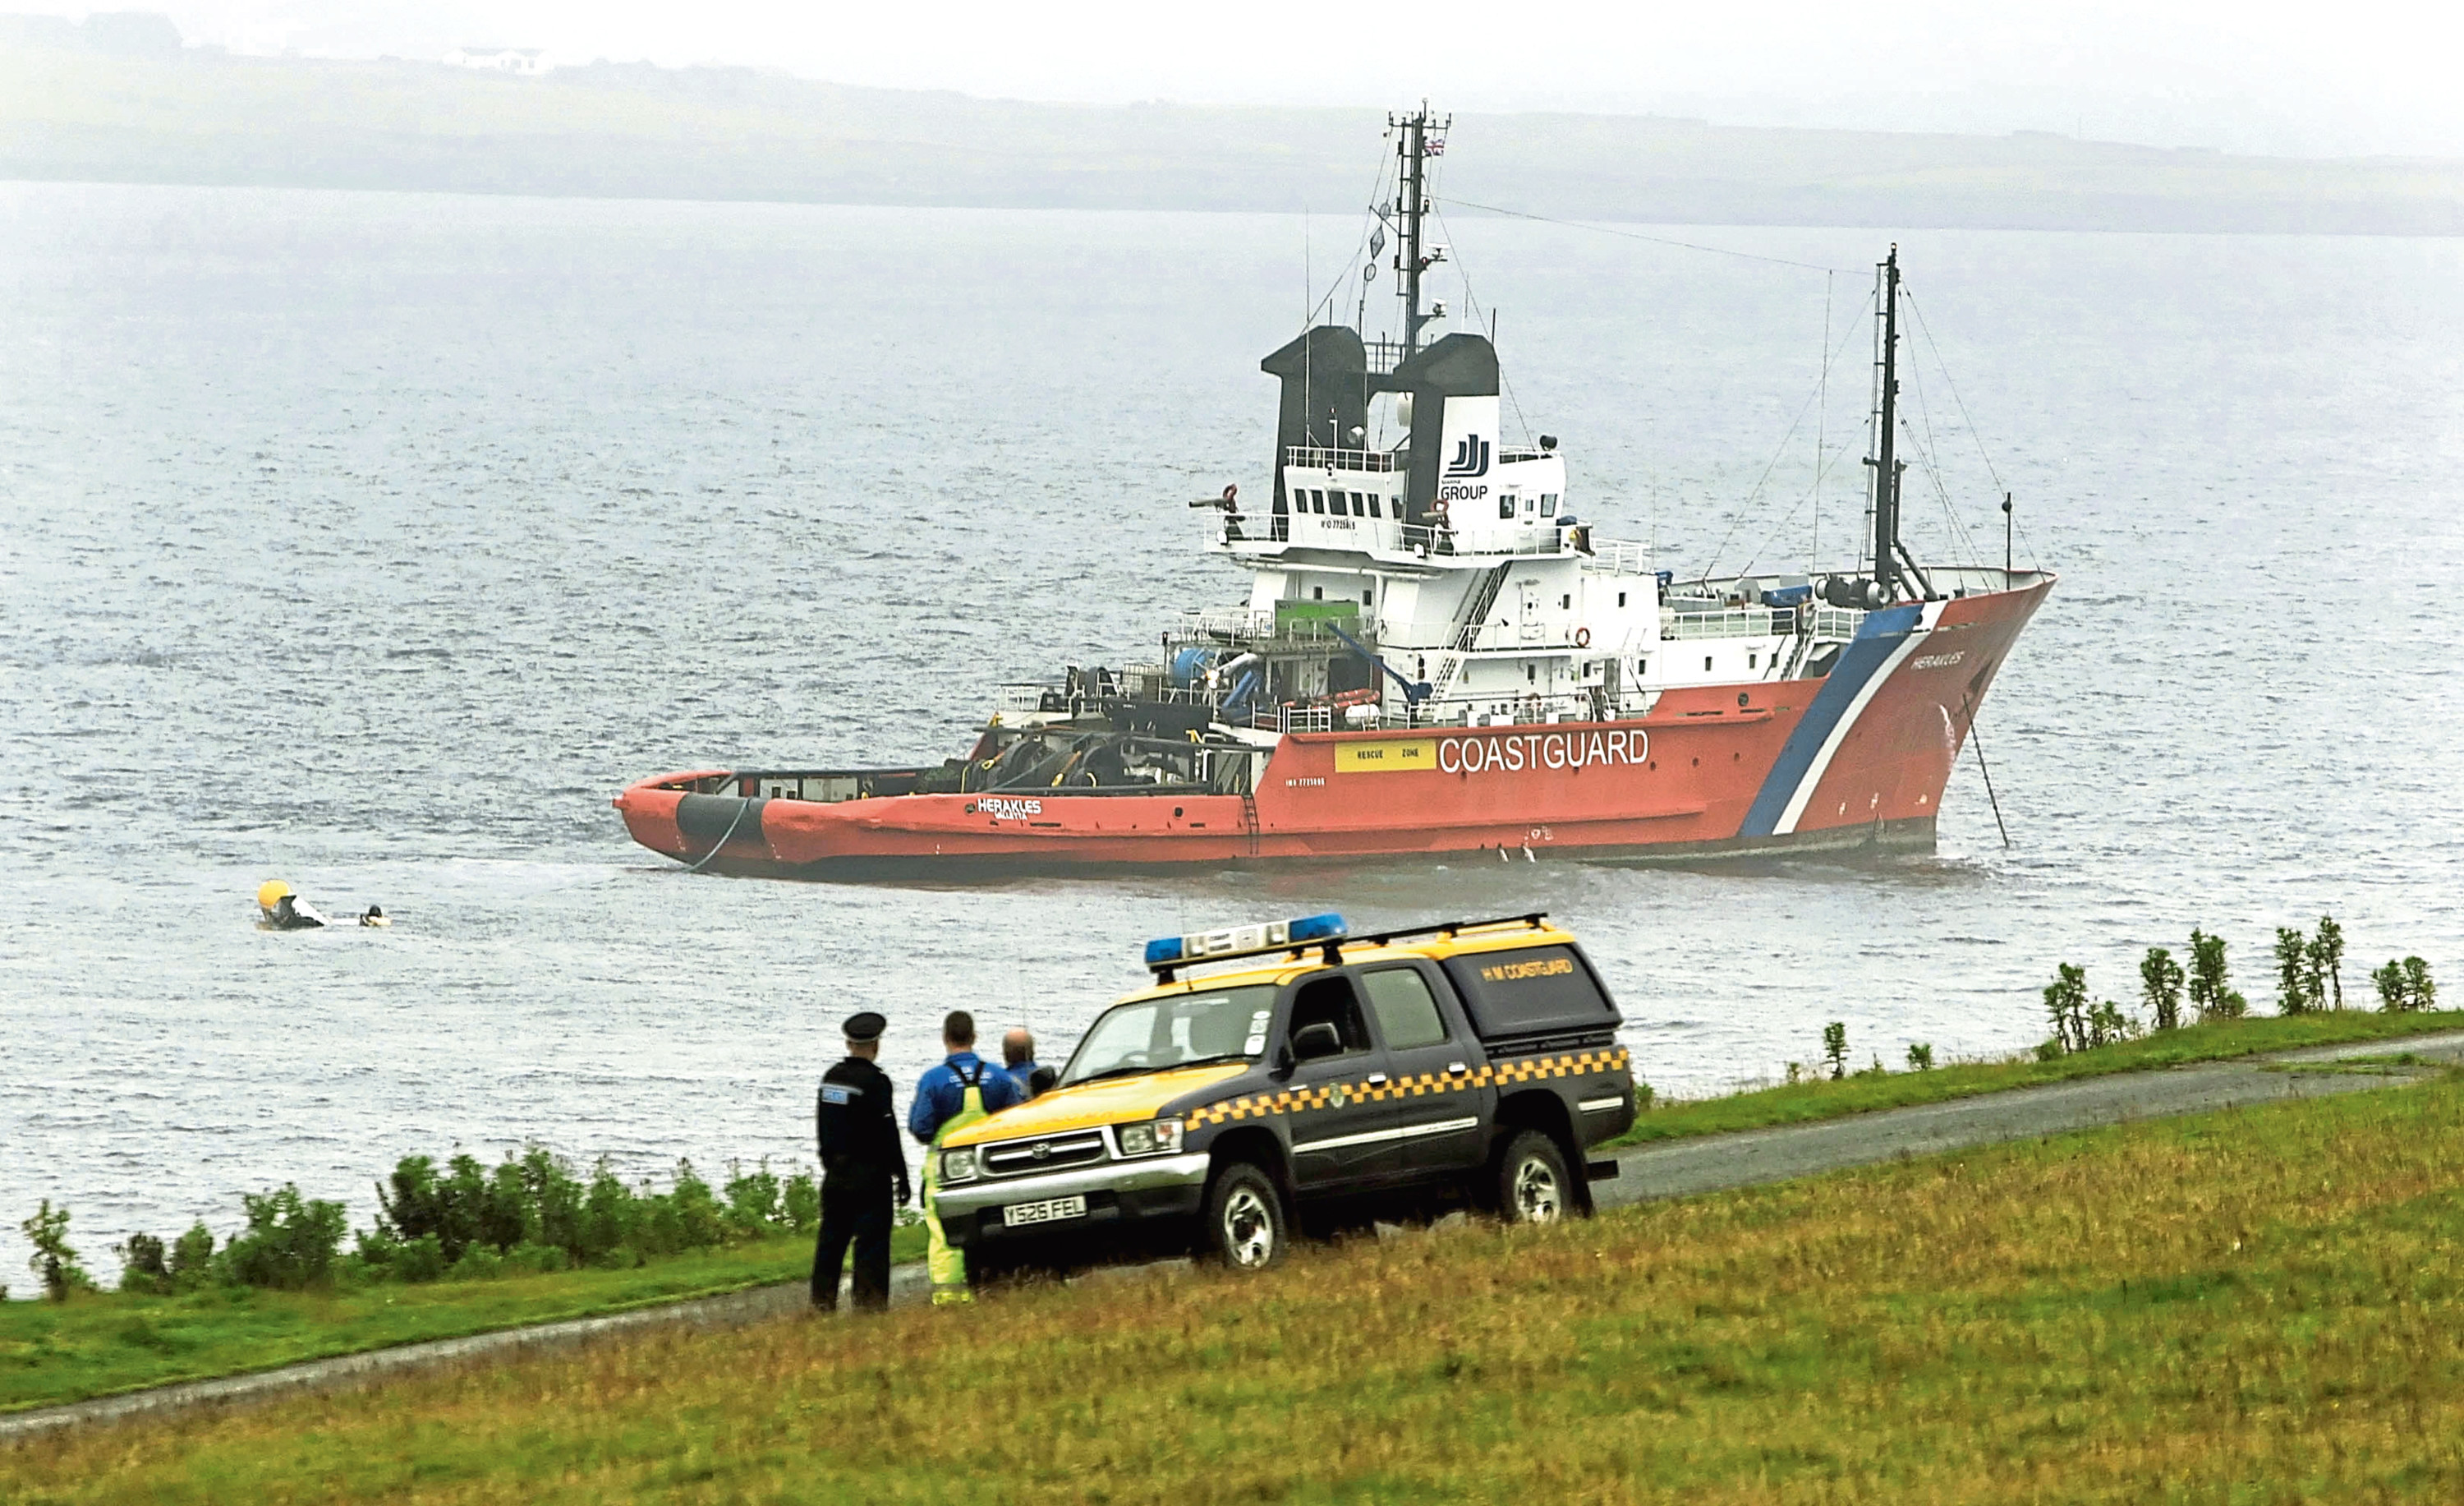 The Eurocopter AS332 Super Puma helicopter crashed on approach to Sumburgh Airport on August 23, 2013.